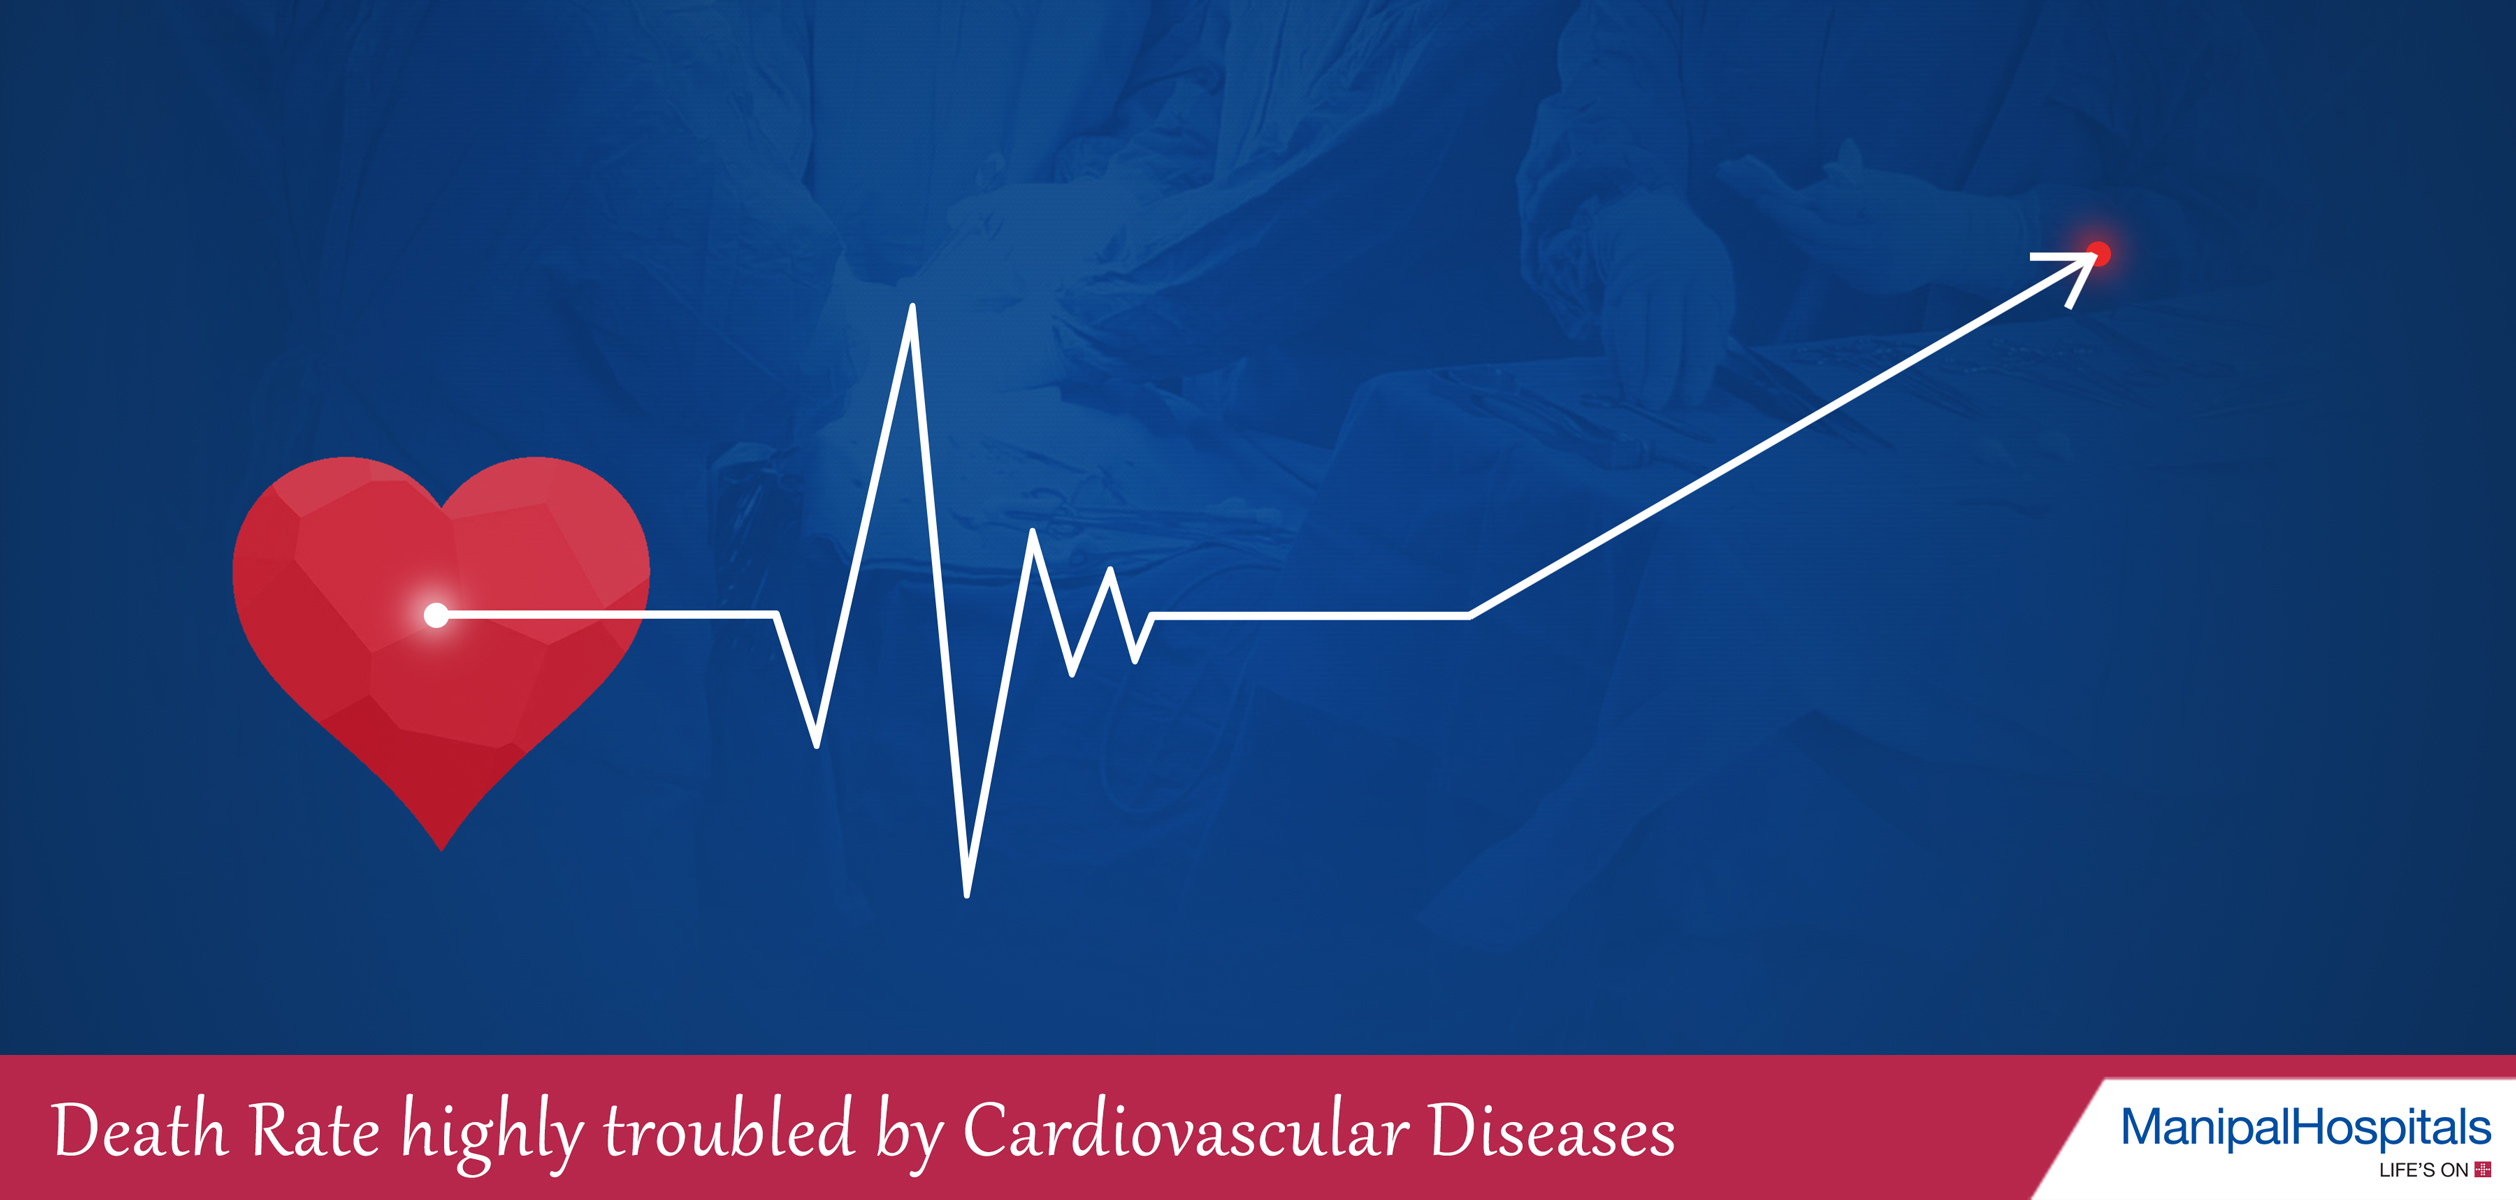 Death Rate: Highly troubled by Cardiovascular Diseases